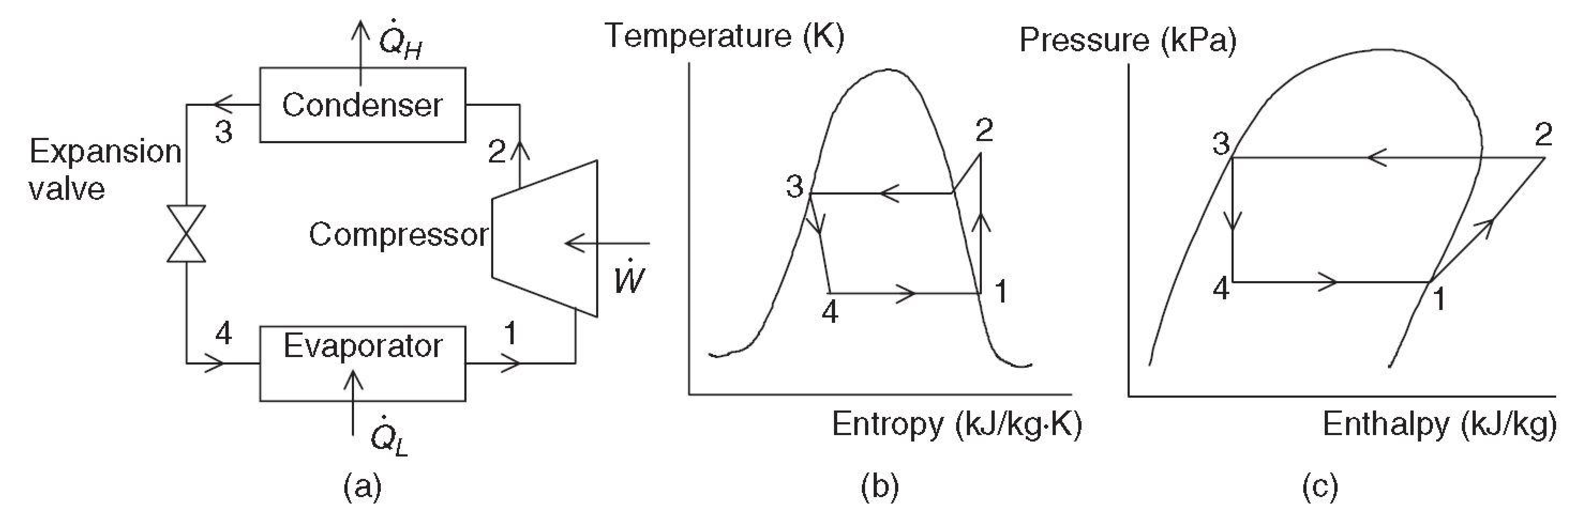 Figure 1: (a) A basic vapor-compression refrigeration system, (b) its T-s diagram, and (c) its log P-h